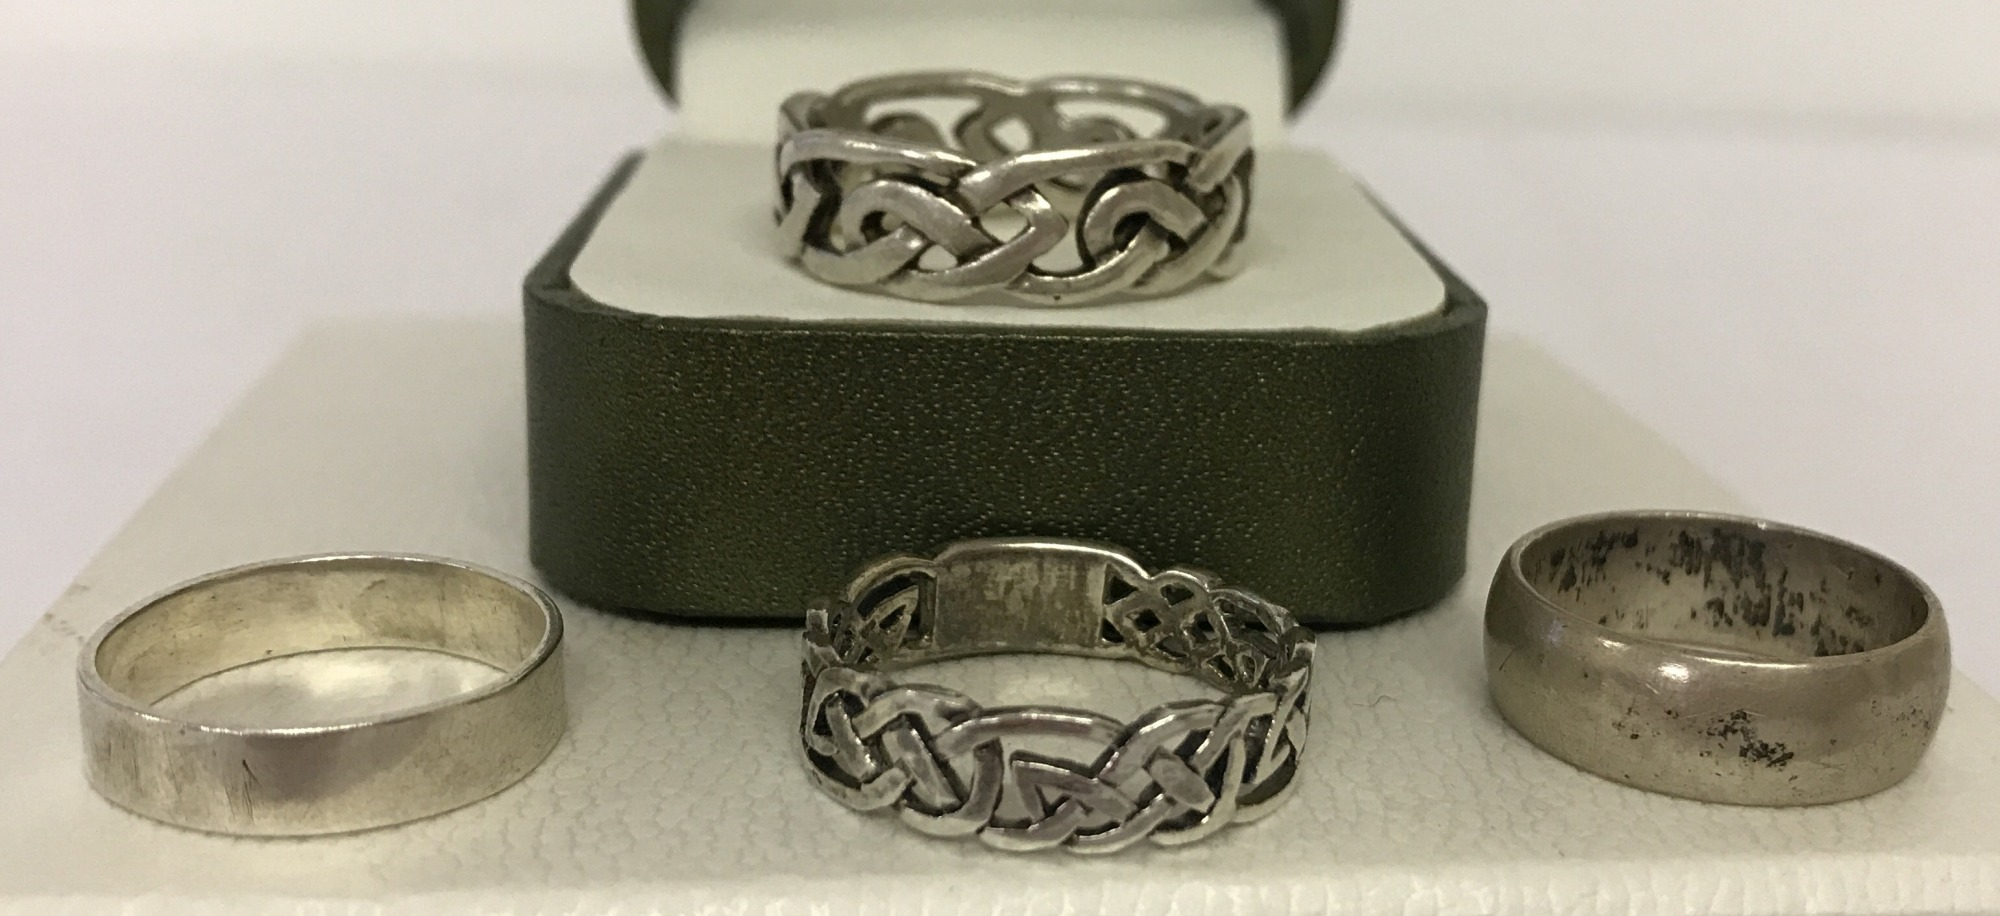 Lot 41 - 4 silver and white metal band rings.